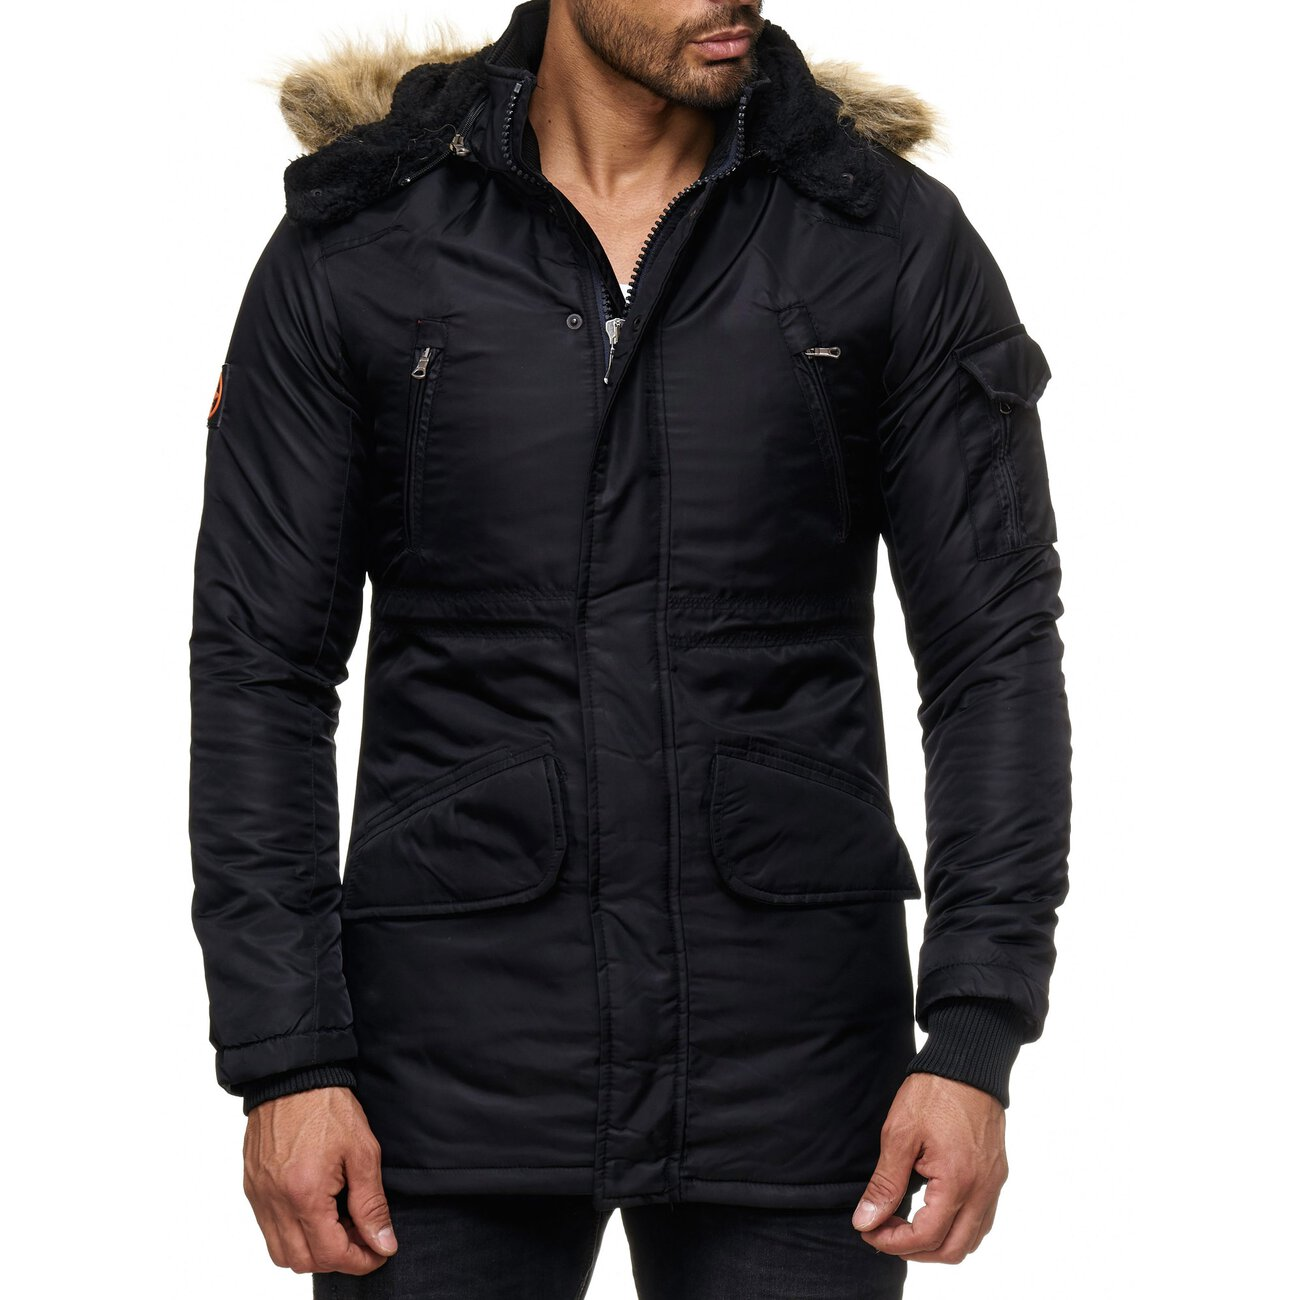 herren jacke mit fellkapuze winter jacke anorak parka kapuzenjacke. Black Bedroom Furniture Sets. Home Design Ideas